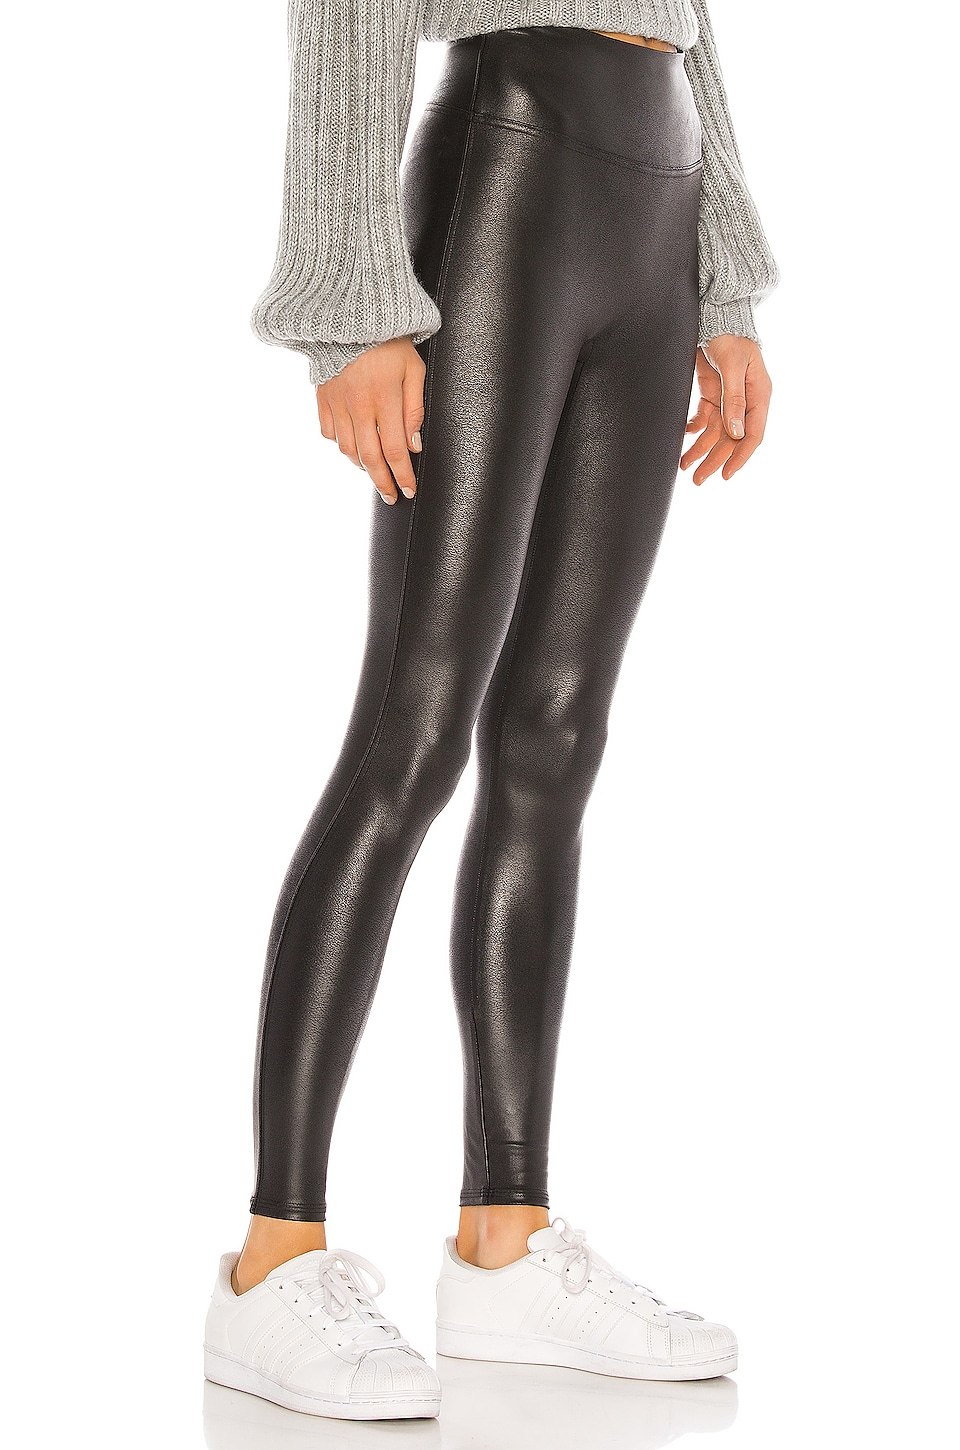 Petite Faux Leather Legging, view 2, click to view large image.